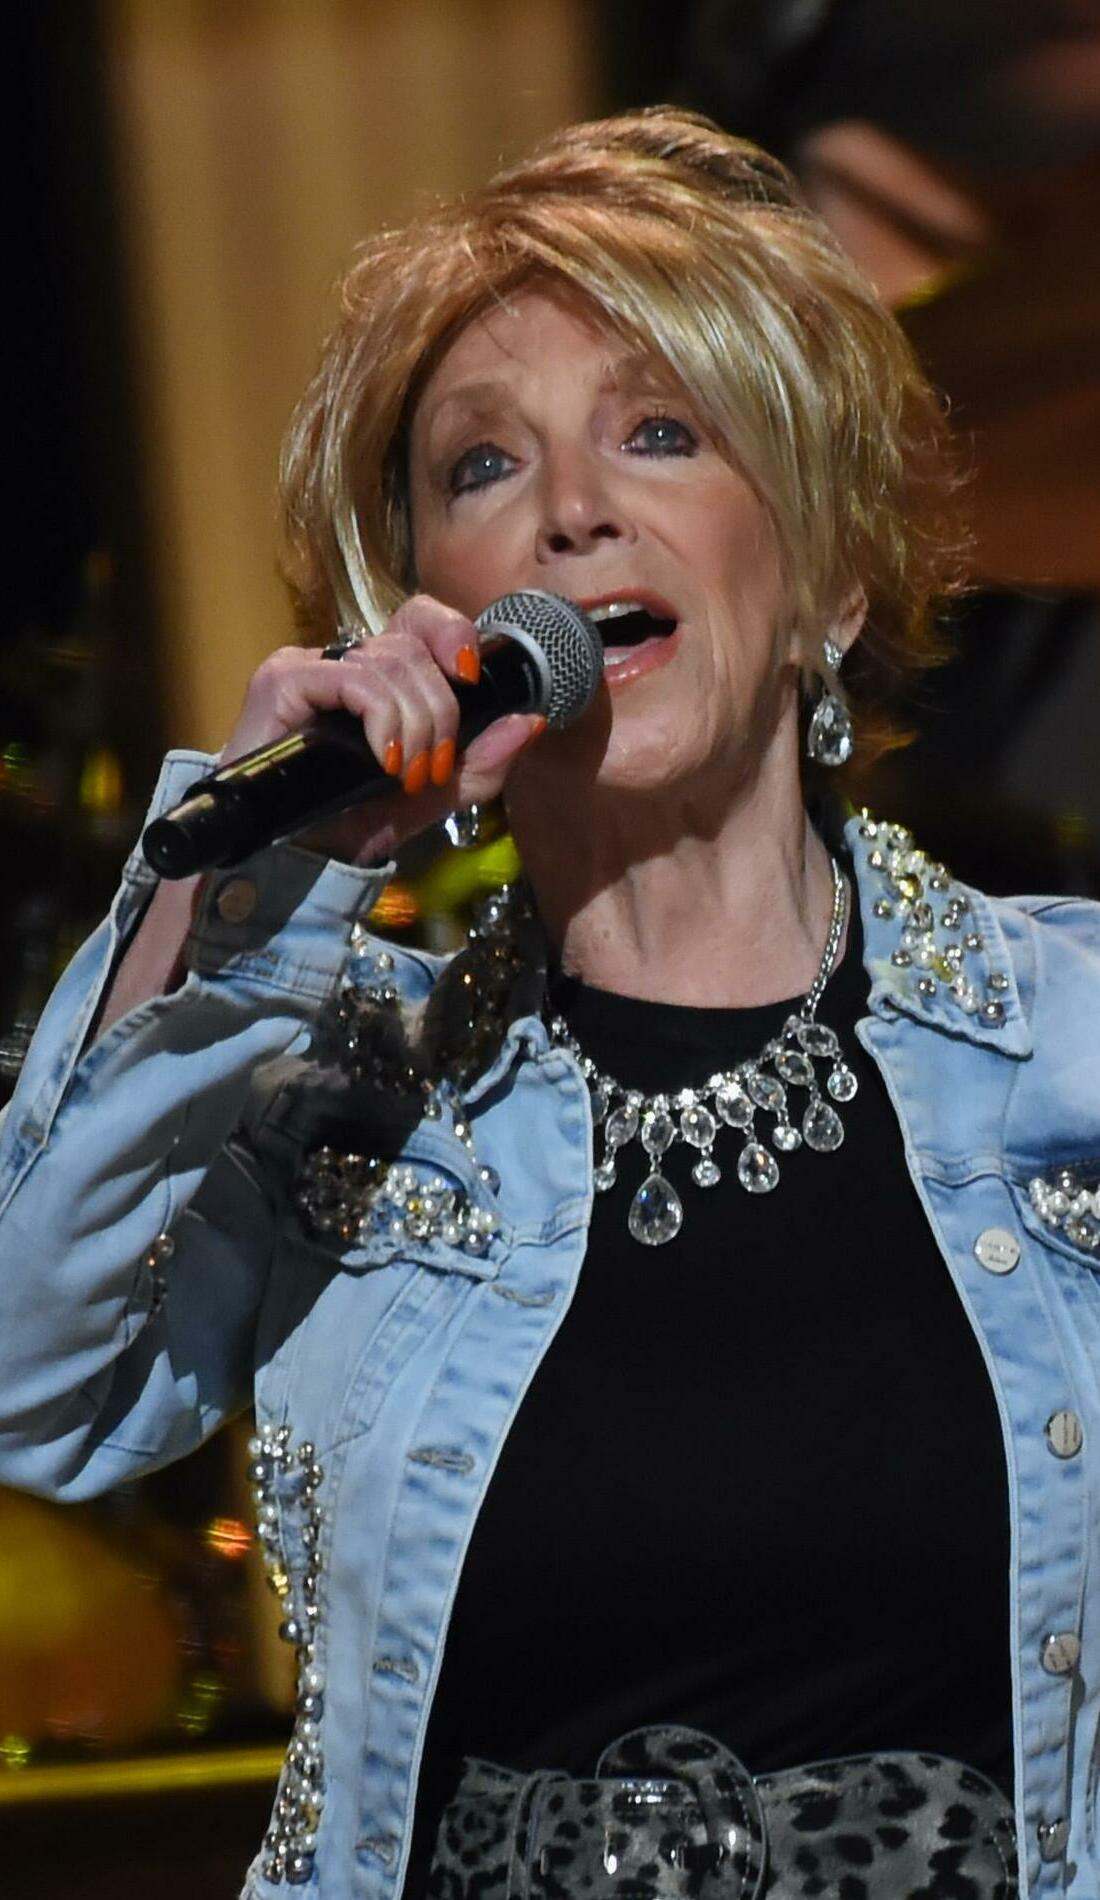 A Jeannie Seely live event